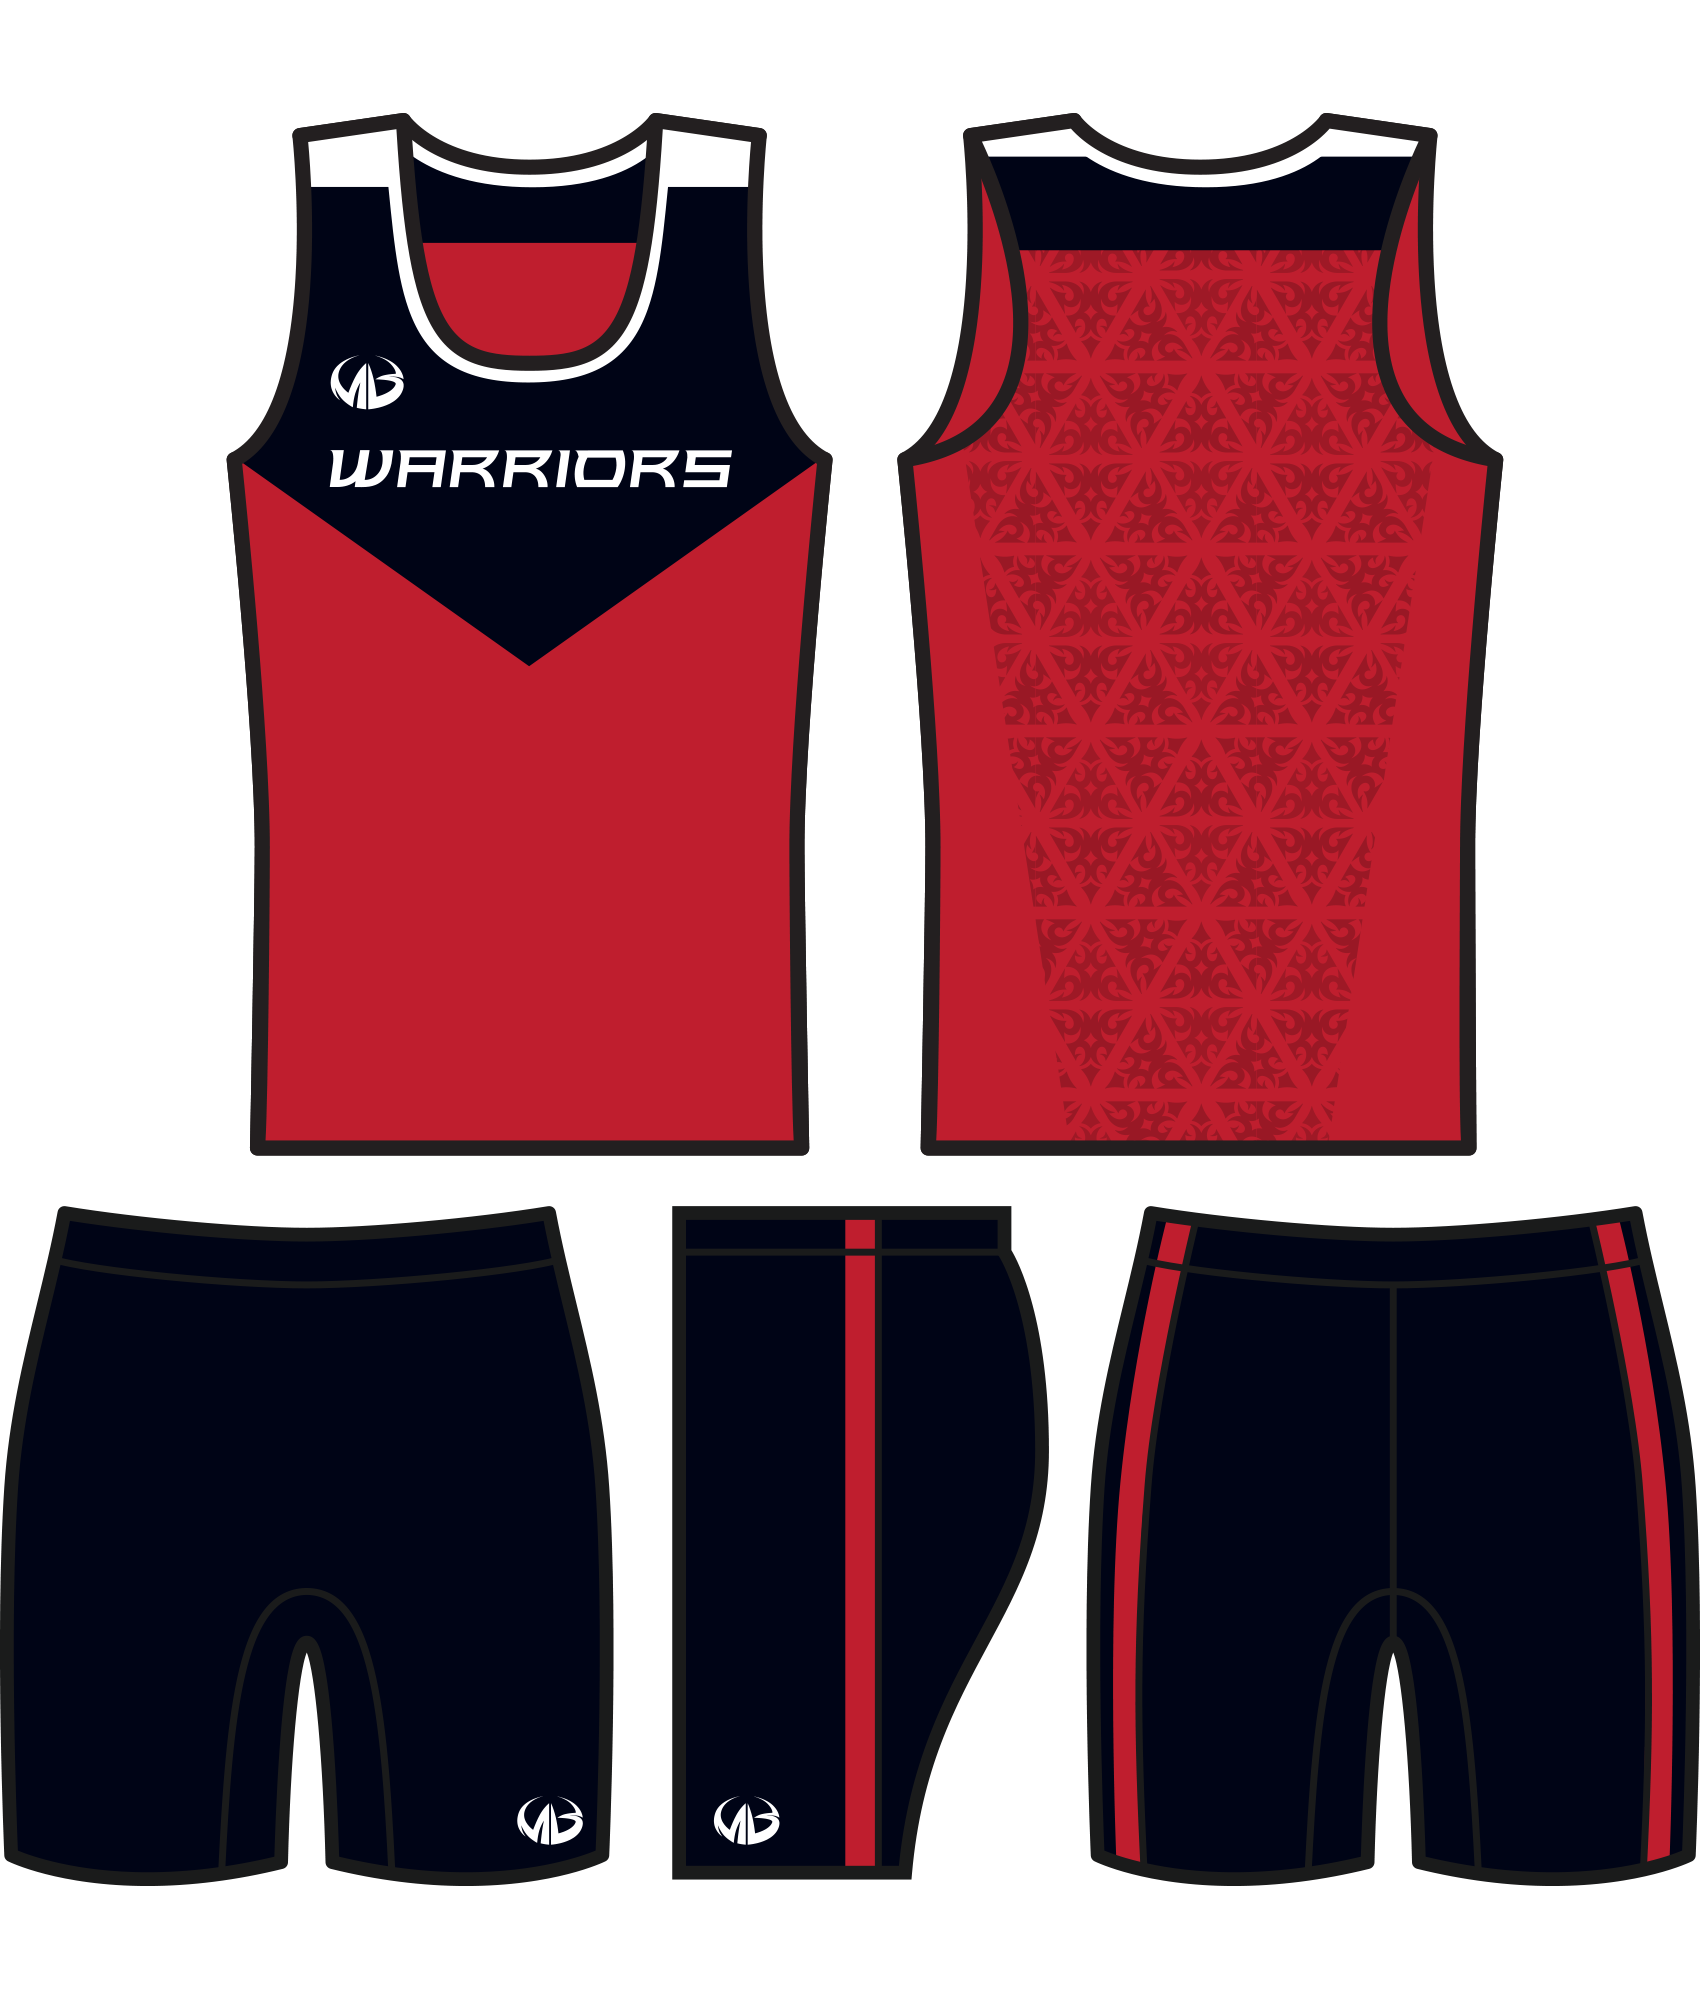 Jersey clipart jersey shorts, Jersey jersey shorts.